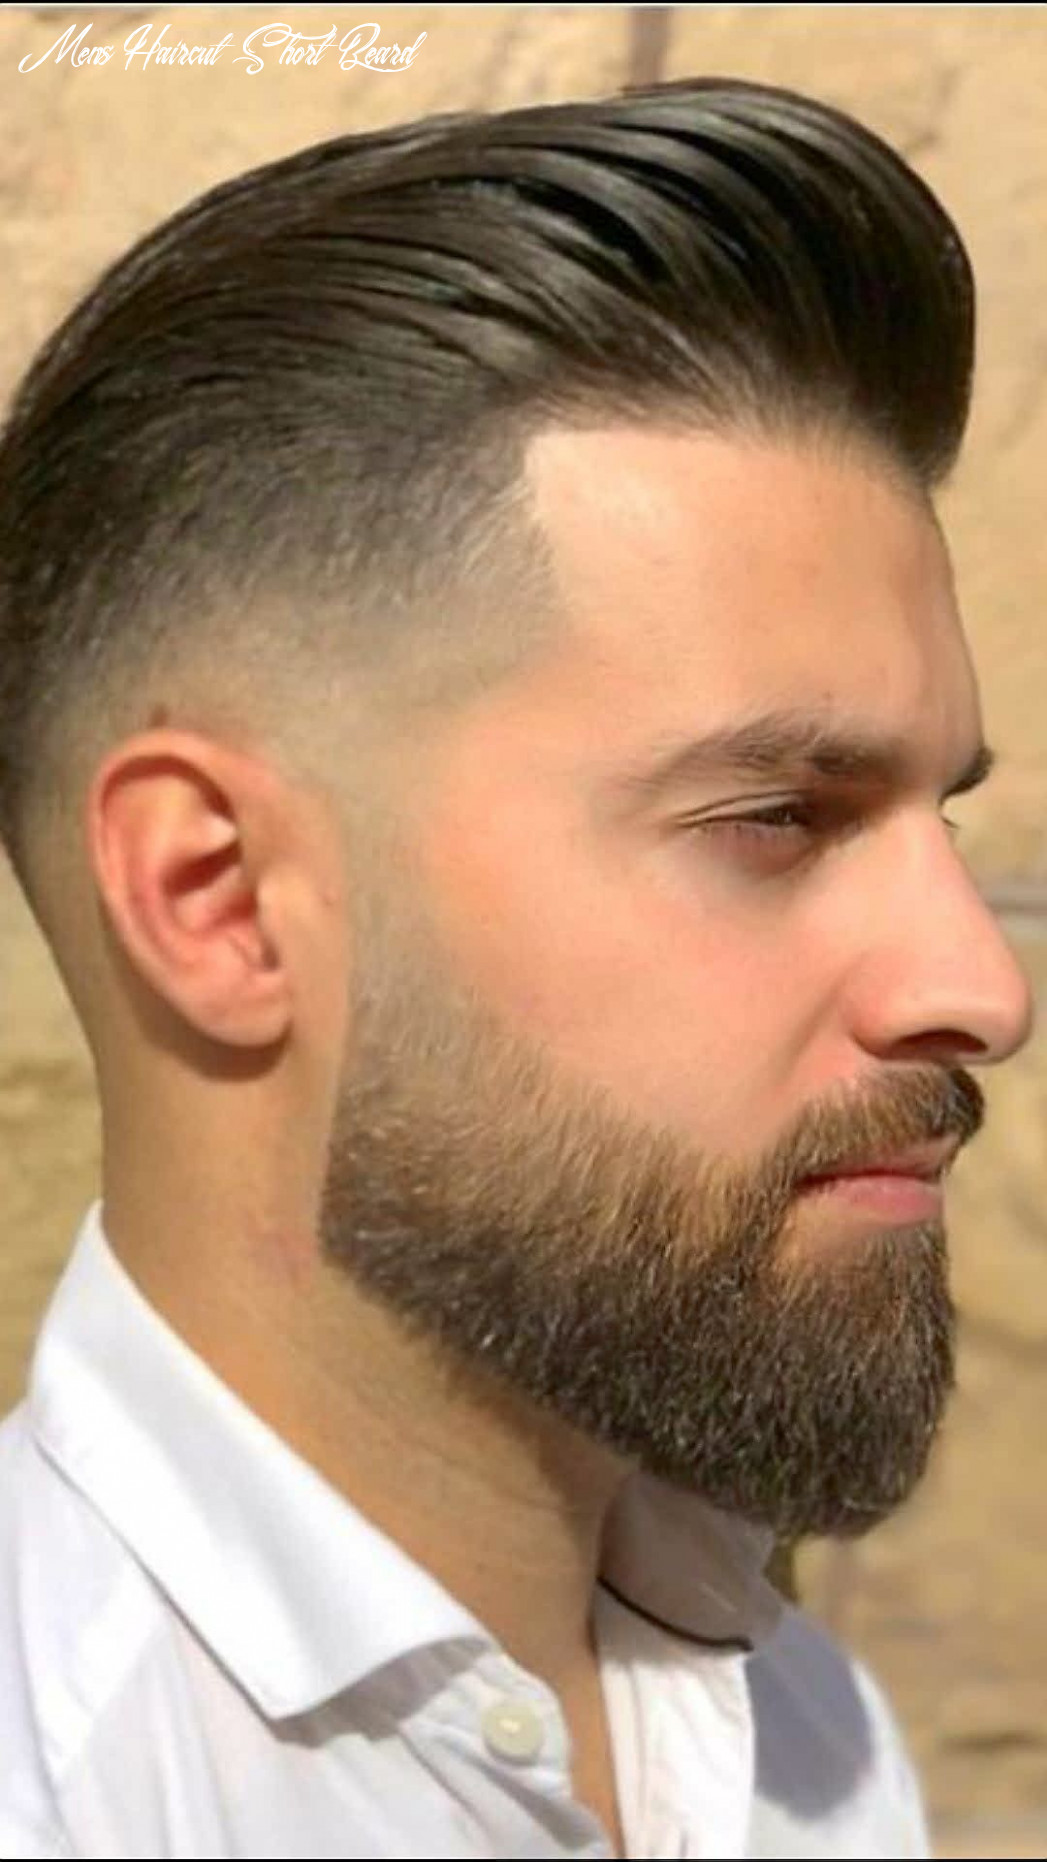 BEARDED ?? GORGEOUS WITH HAIRSTYLE !! | Beard styles short, Best ...